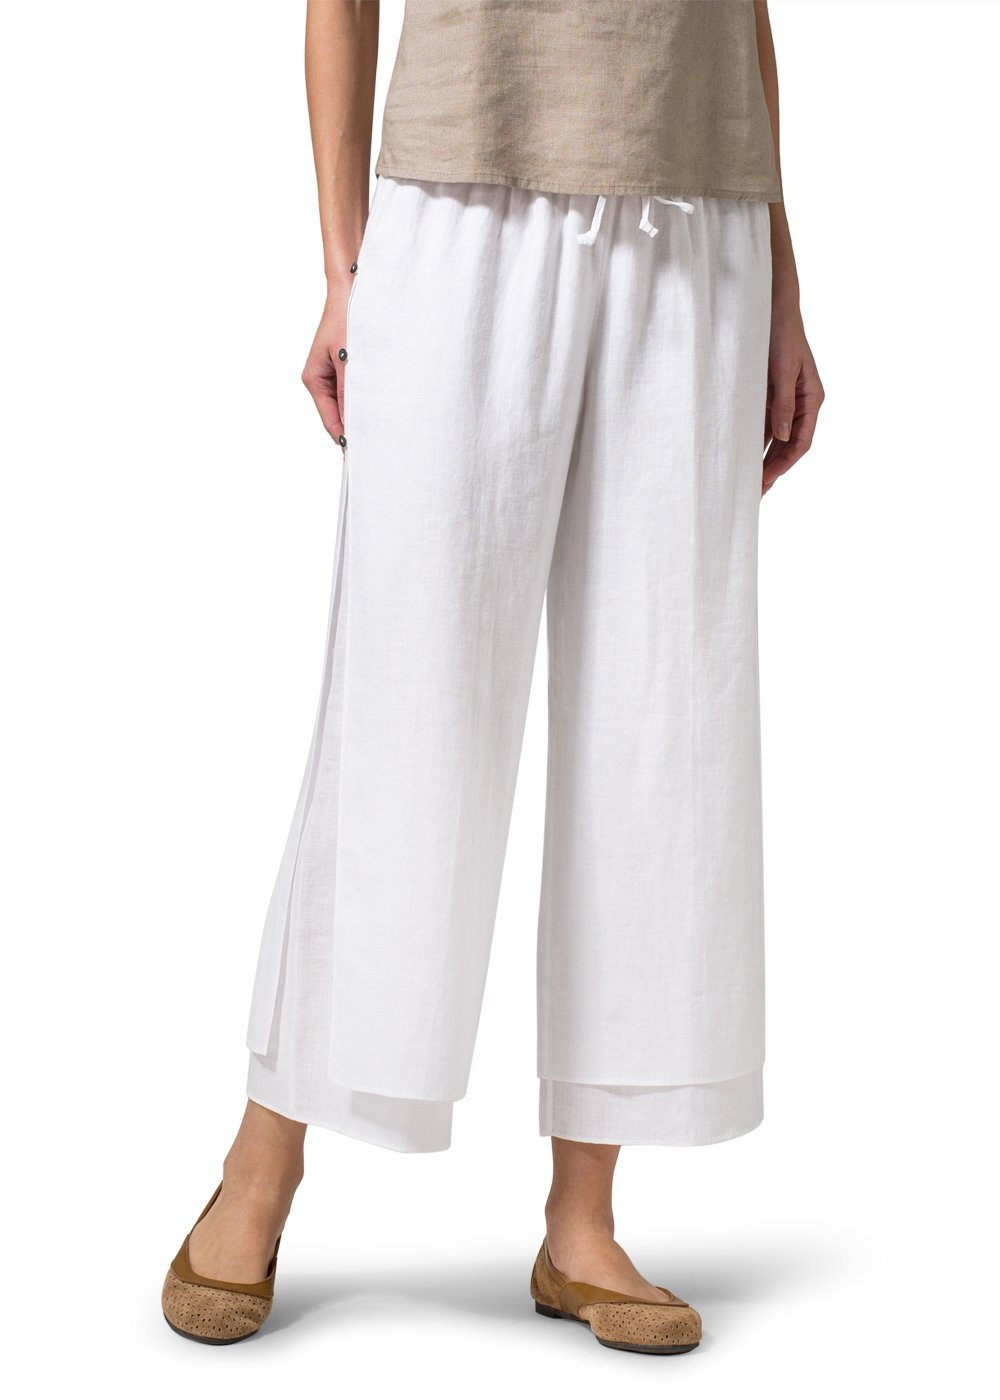 Linen Double-Layer Cropped Pants With Sea Shell Button-L-White/White